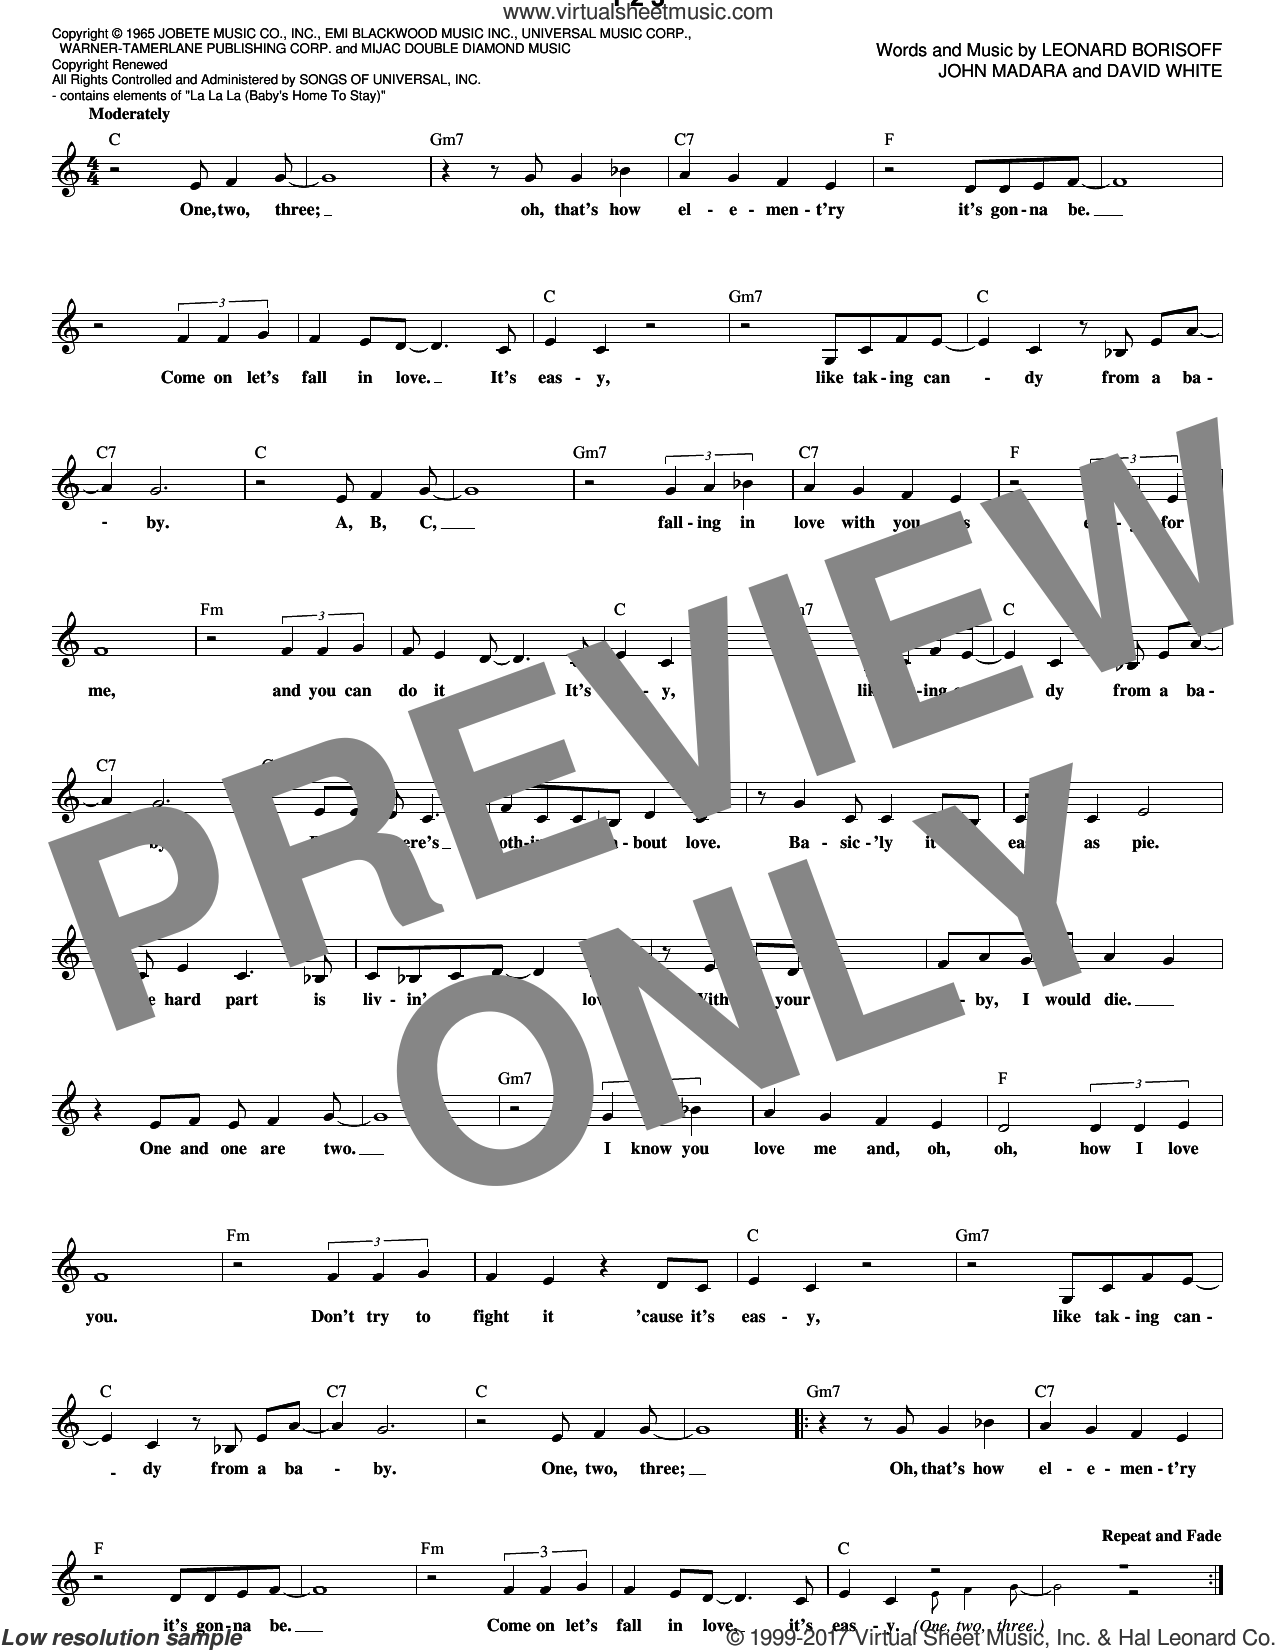 1 2 3 sheet music for voice and other instruments (fake book) by Len Barry, Brian Holland, David White, Edward Holland, Jr., John Madara, Lamont Dozier and Leonard Borisoff, intermediate skill level